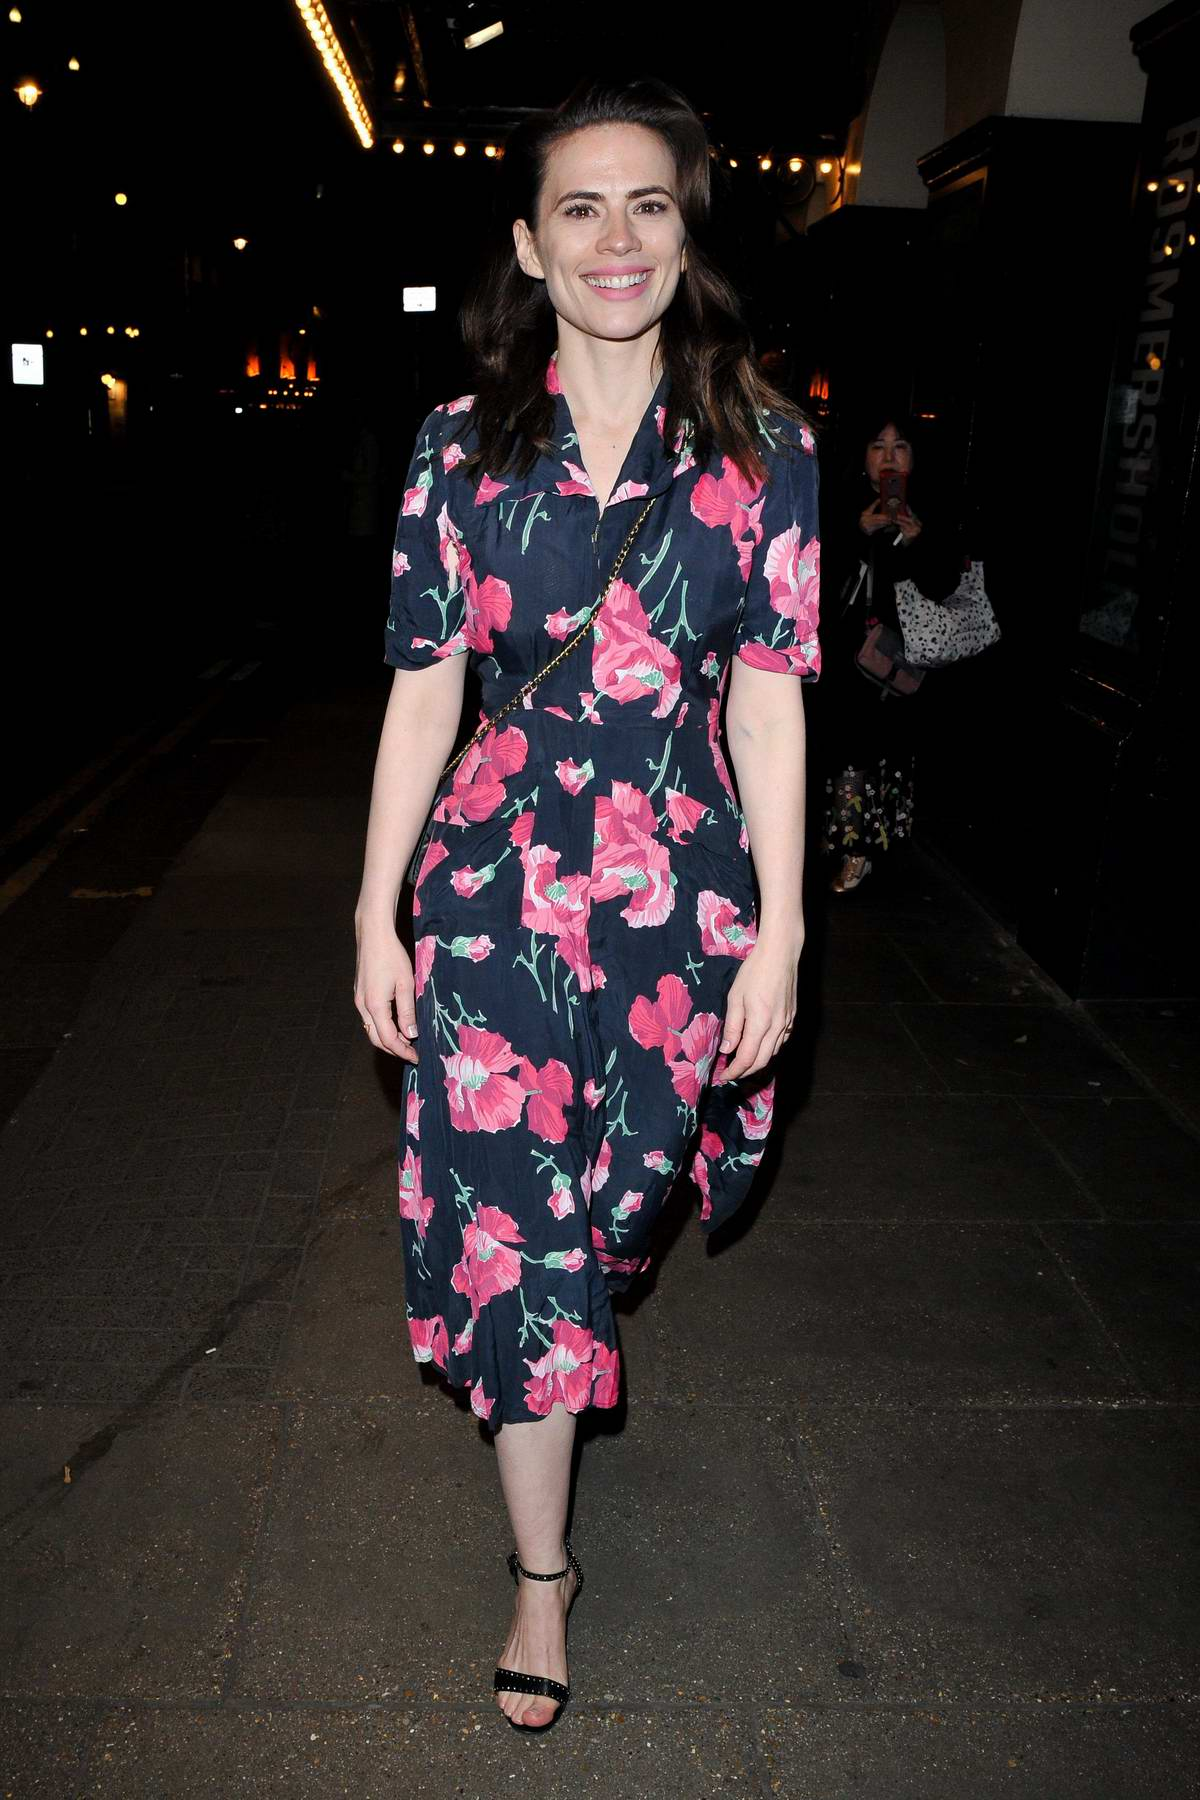 Hayley Atwell spotted in a blue floral dress as she heads out post her performance in 'Rosmersholm' in London, UK